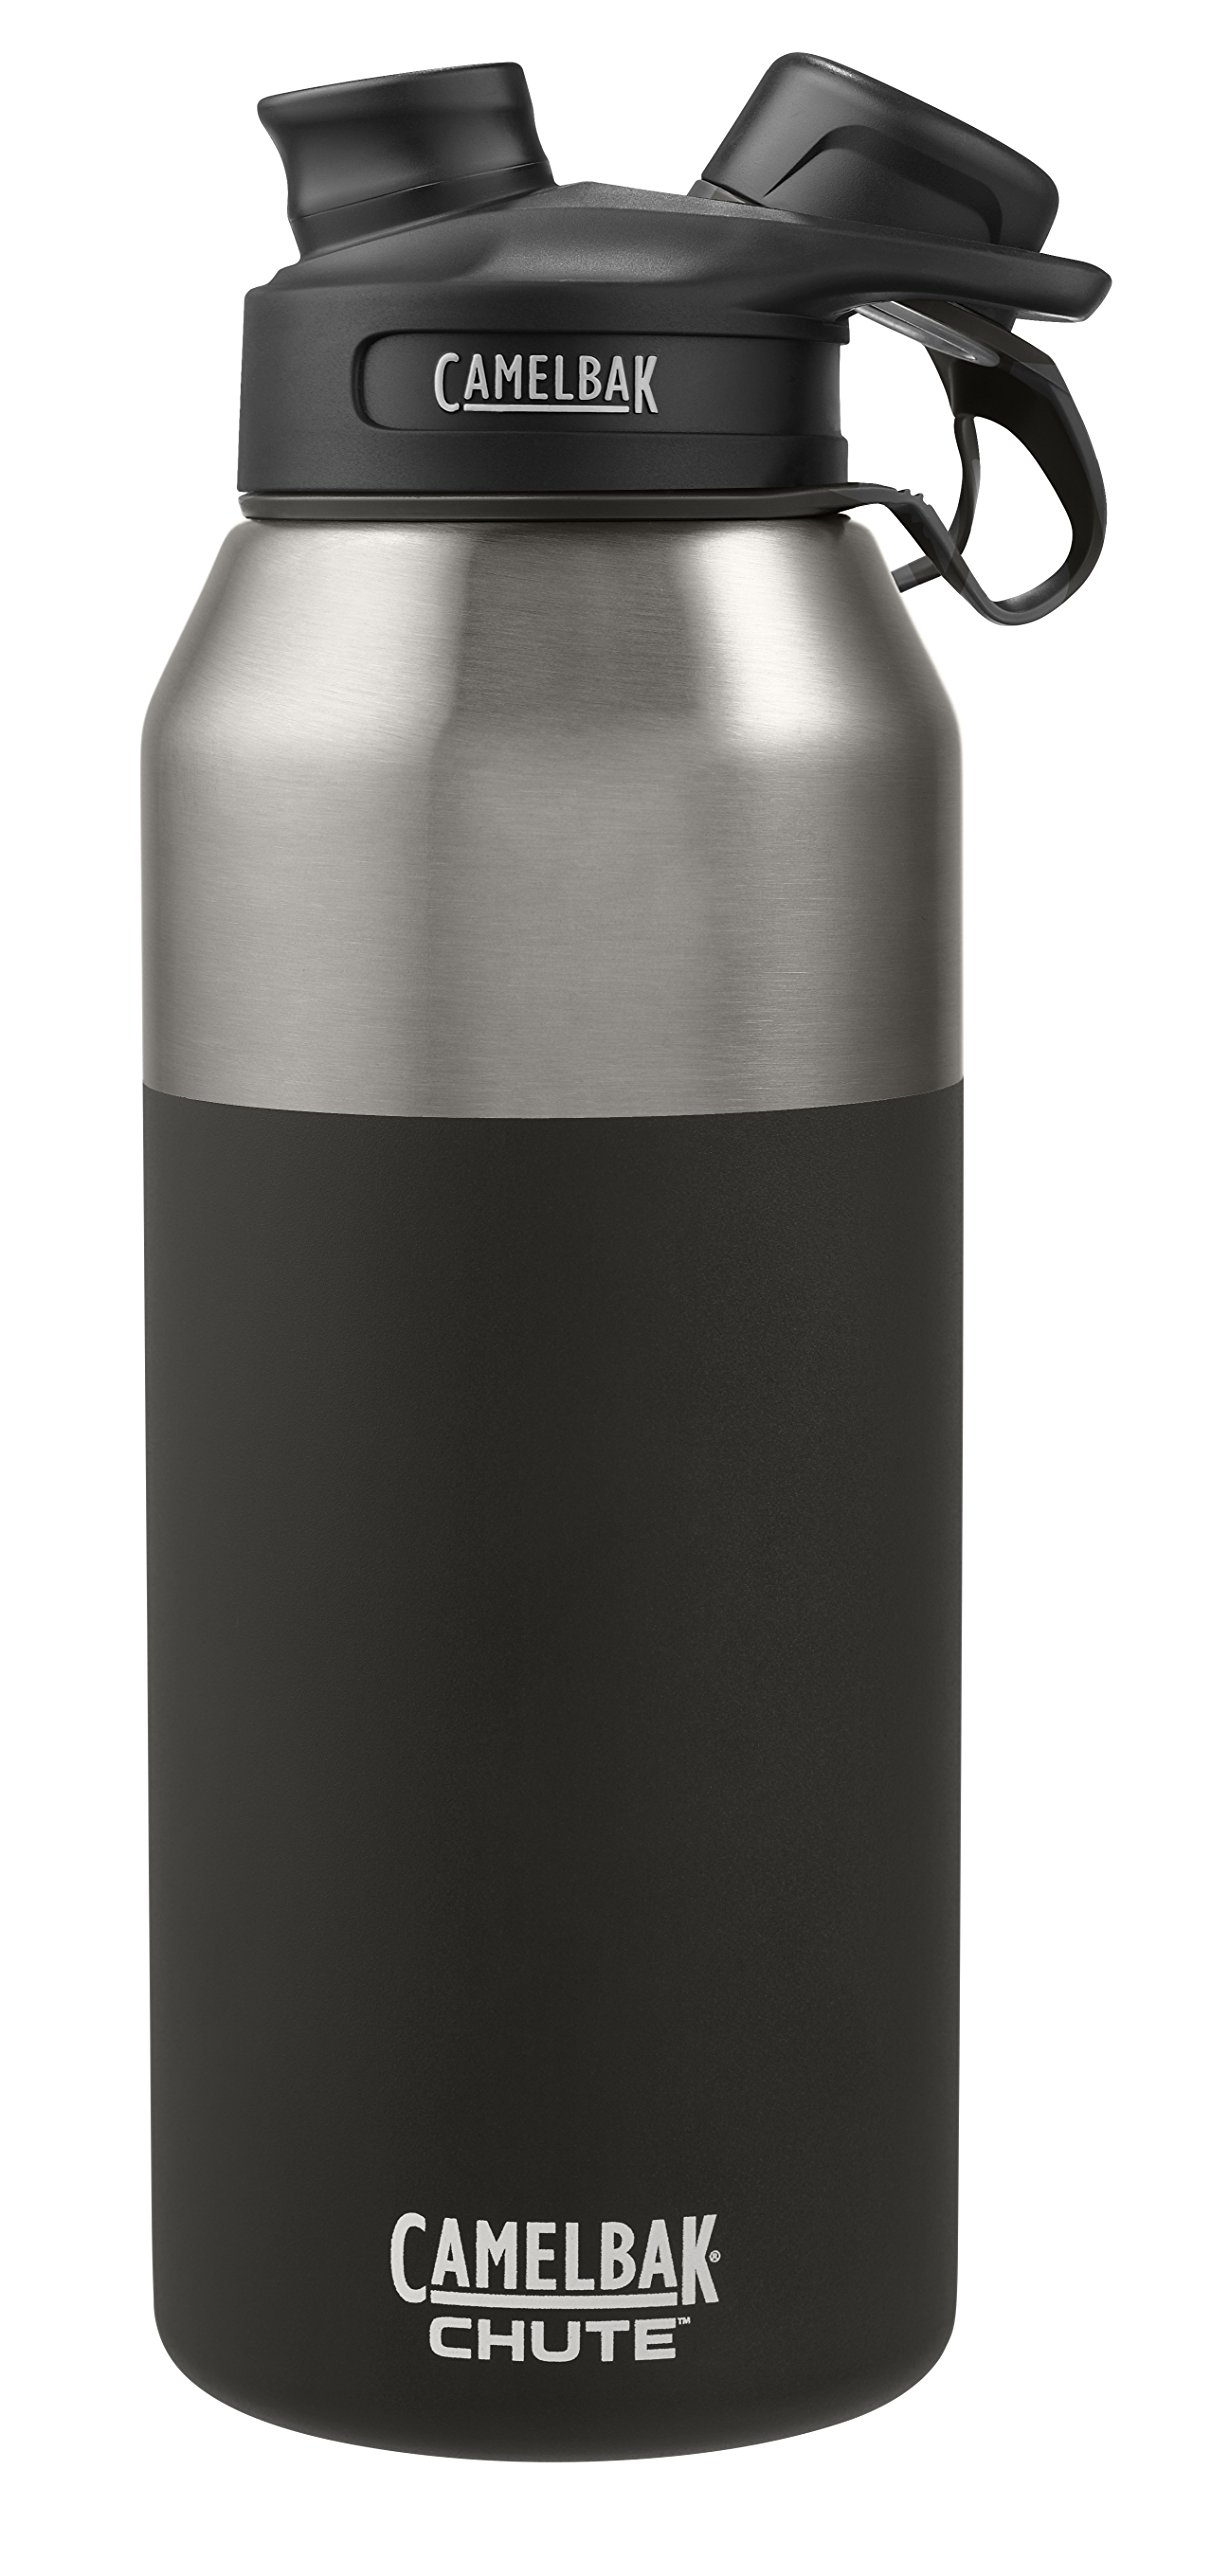 CamelBak 53868 Chute Vacuum Insulated Stainless Water Bottle, 40 oz, Jet by CamelBak (Image #4)